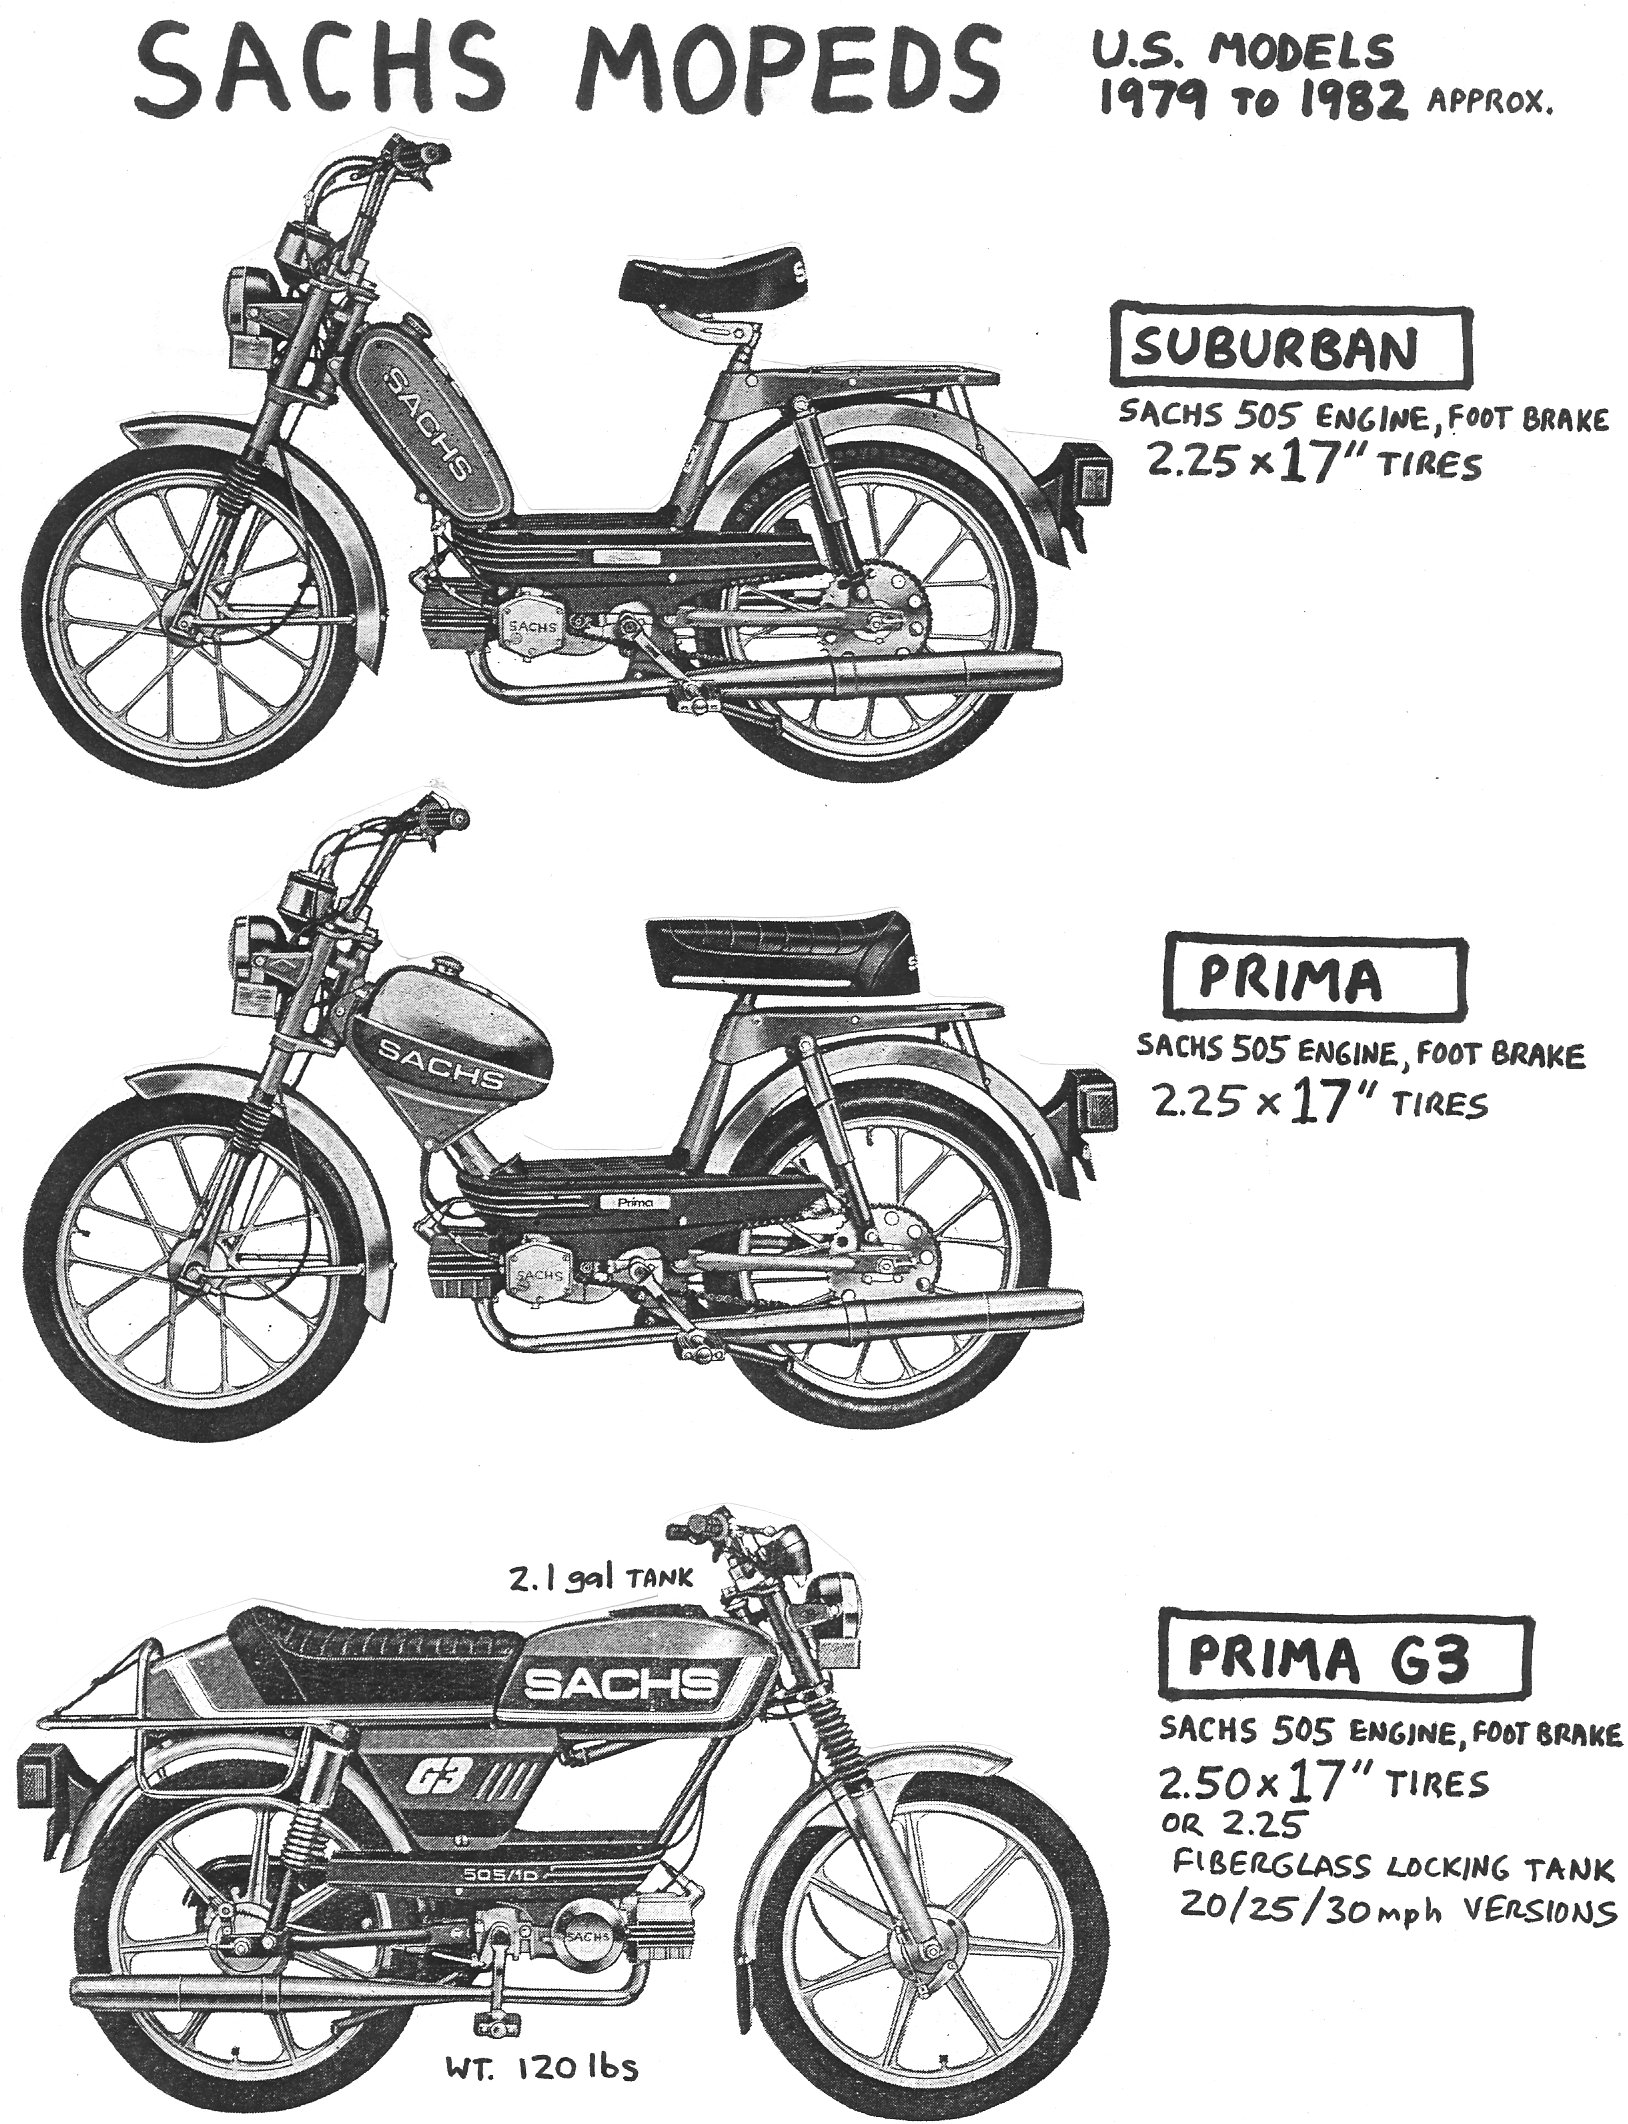 Wiring diagrams 02 also Harley Davidson Engine Blueprint further Harley Engine Diagram together with Harley Davidson 110 Engine Diagram likewise 75 Shovelhead Simple Wiring Diagram Harley. on simple harley wiring diagram evolution